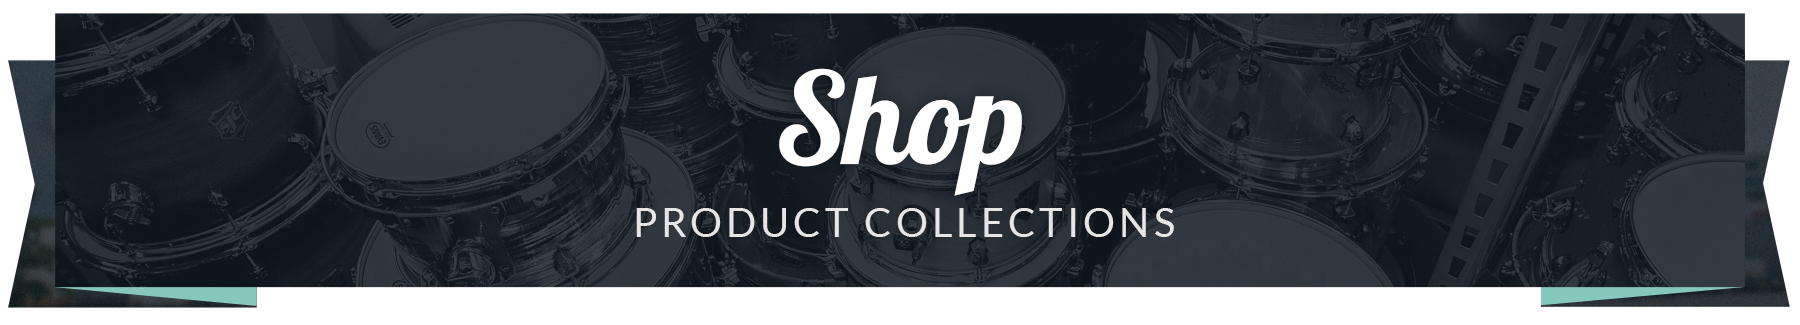 Shop SJC Custom Drums product line, drum set, drum kit, snare drums